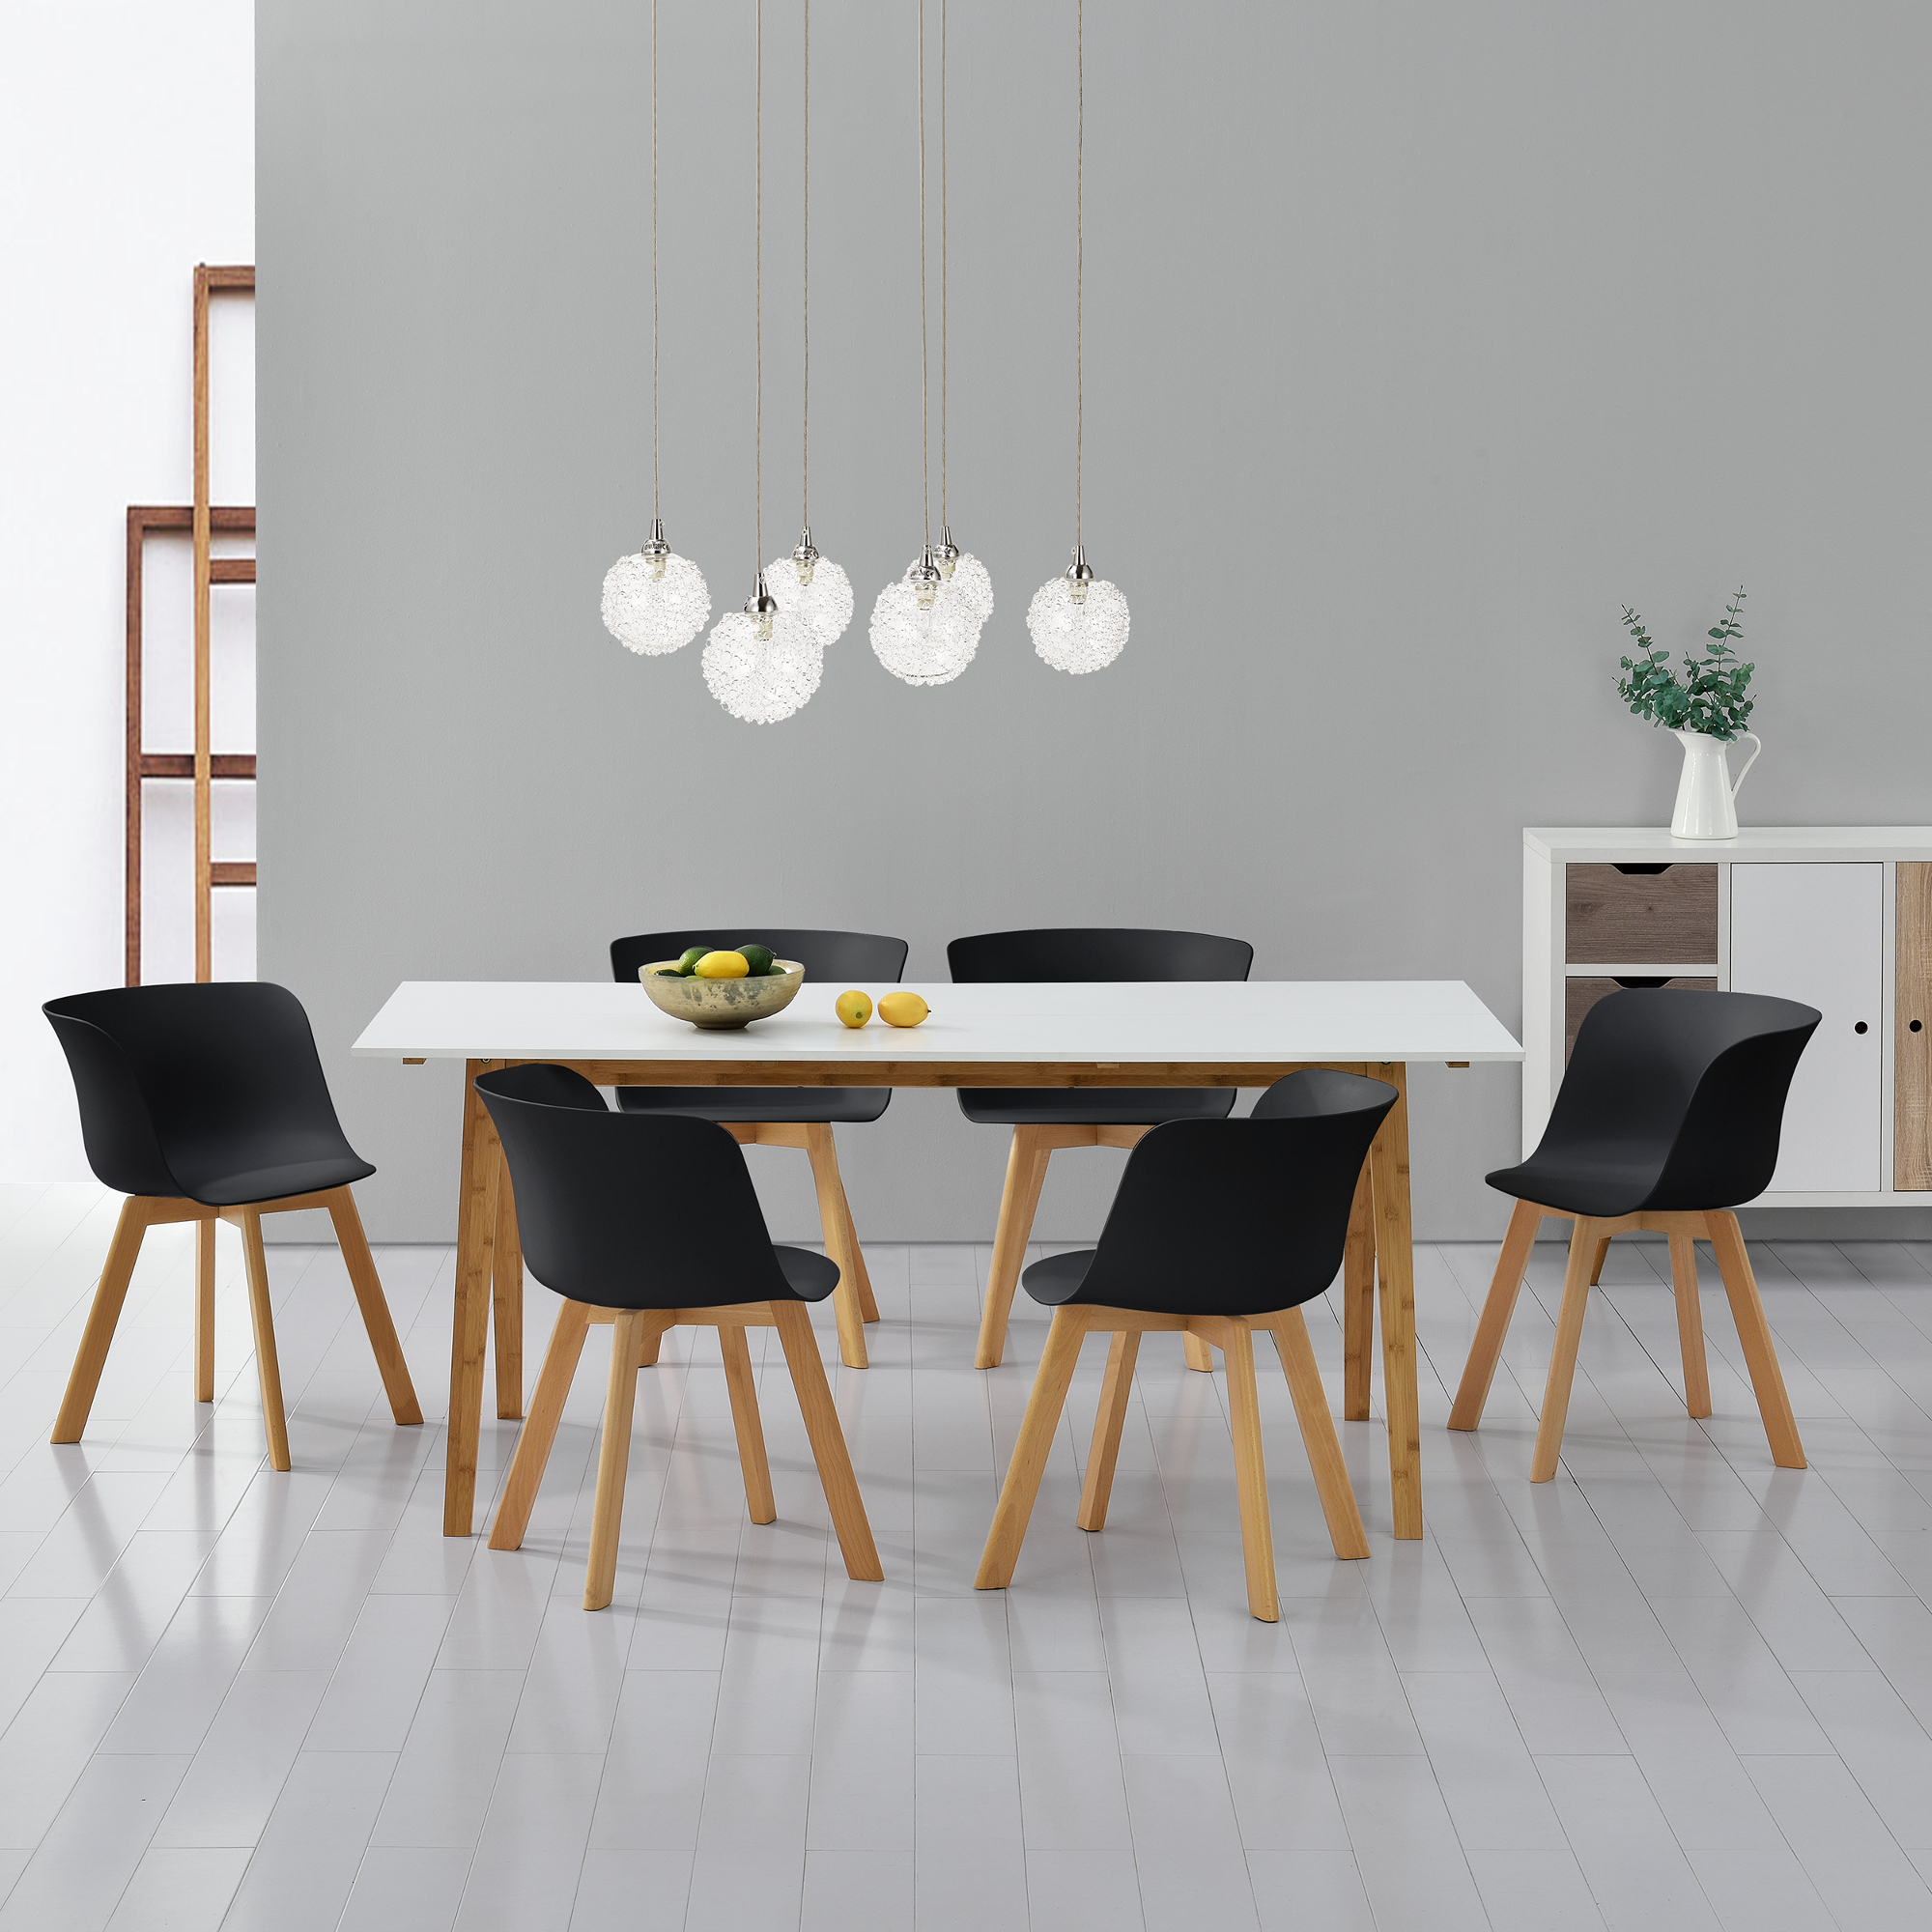 En casa dining table bamboo 180x80cm with 6 chairs padded white